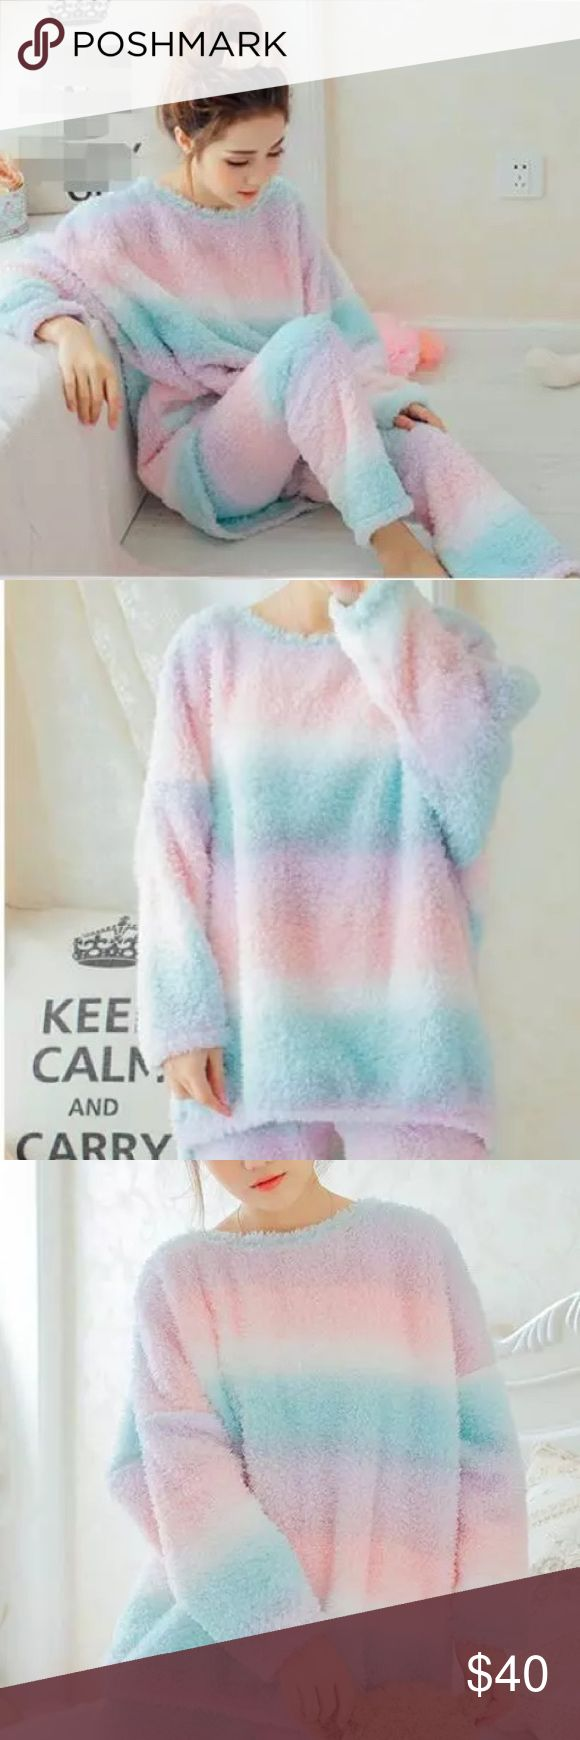 Kawaii Pastel Rainbow Plush Winter Sleep Pajama Brand new Kawaii Pastel cotton candy rainbow plushie pajama sleepwear set. Extra warm, soft to touch, and perfect for the winter. Size small or medium. Two piece set. Elastic waist. This set looks even better in person. Intimates & Sleepwear Pajamas